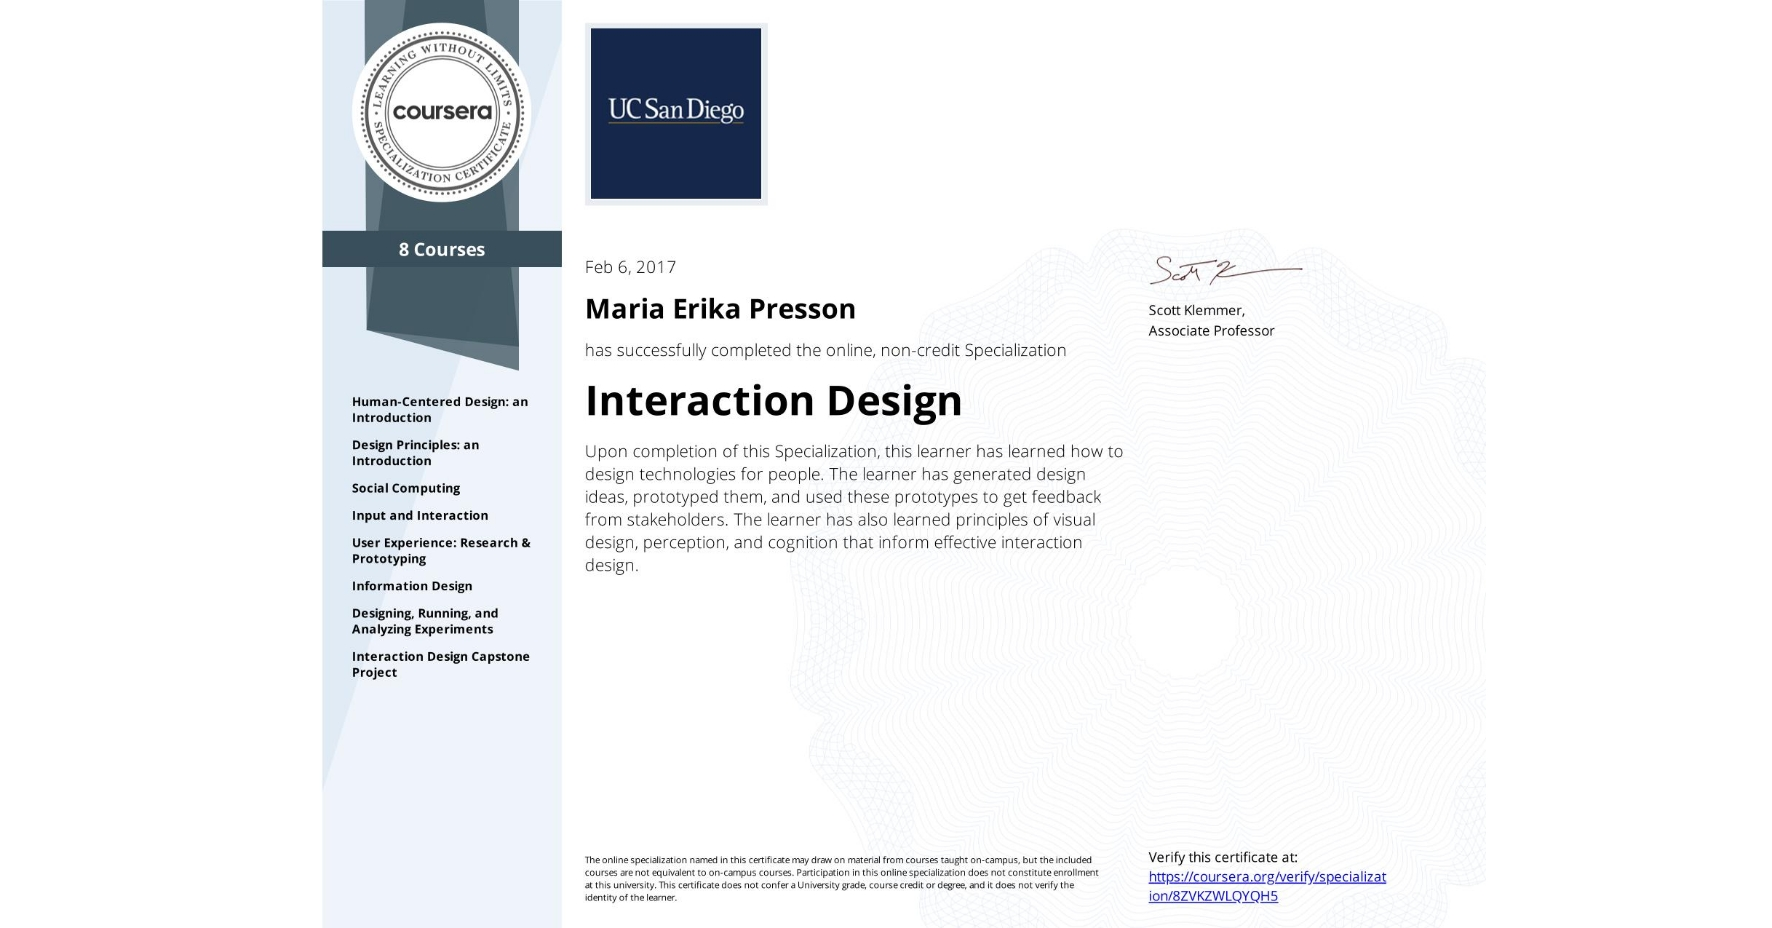 View certificate for Maria Erika  Presson, Interaction Design, offered through Coursera. Upon completion of this Specialization, this learner has learned how to design technologies for people. The learner has generated design ideas, prototyped them, and used these prototypes to get feedback from stakeholders. The learner has also learned principles of visual design, perception, and cognition that inform effective interaction design.